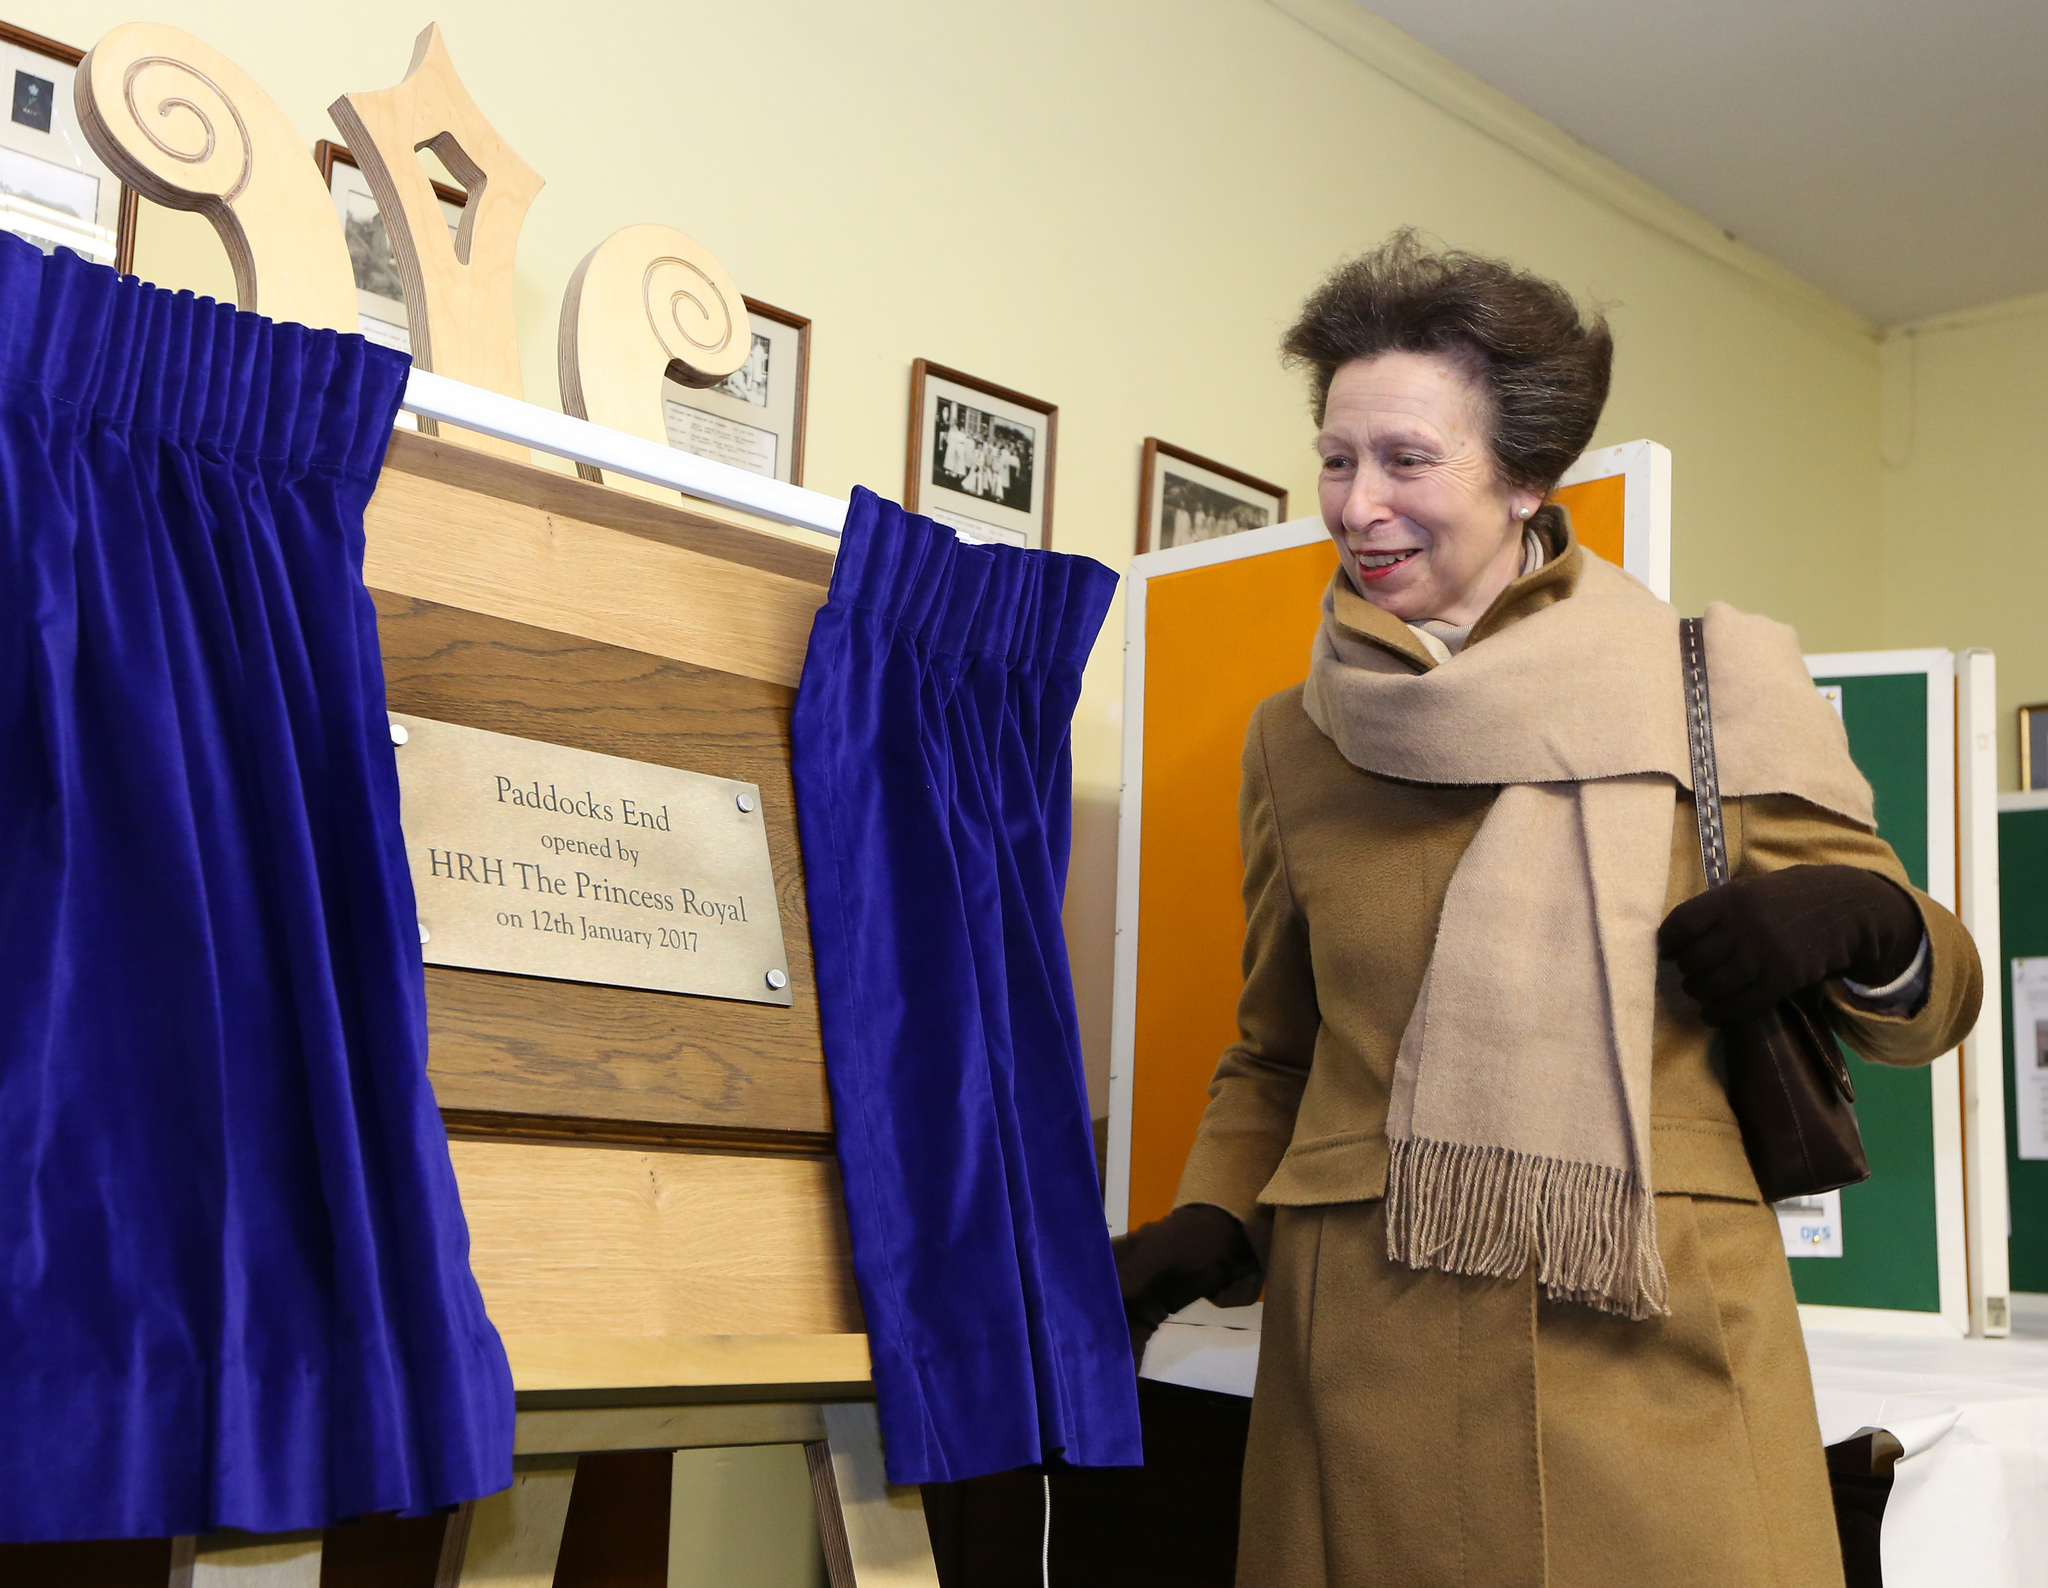 HRH The Princess Royal opening Paddocks End in Hutton Rudby